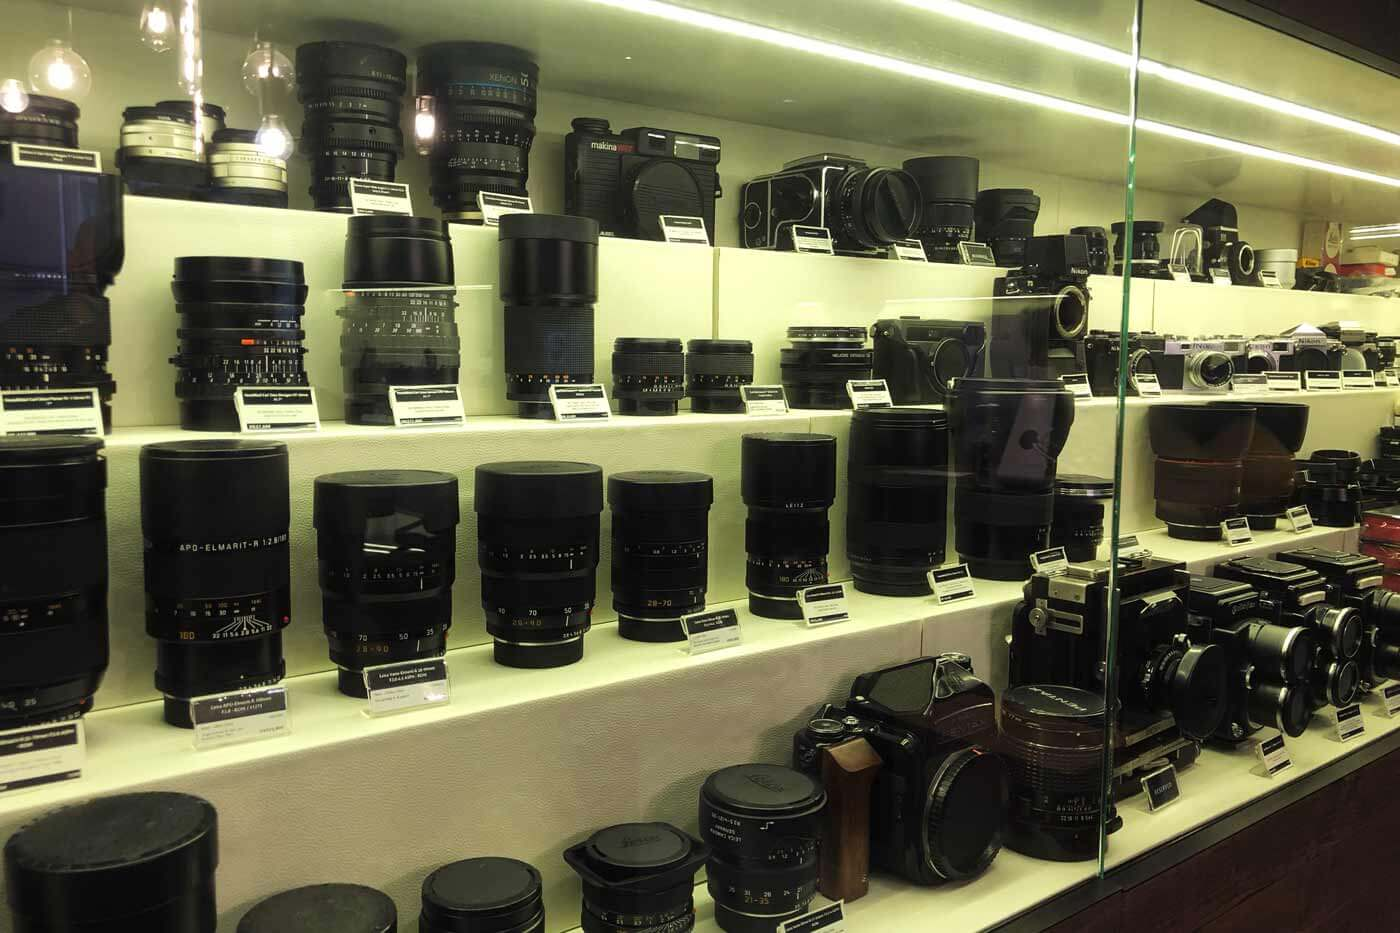 Camera-shop-shops-hong-kong-hk-location-guide-tips-purchase-consignment-second-hand-pre-owned-lenses-cameras-fotopia-display-cabinet-leica-specialist-medium-format-line-up